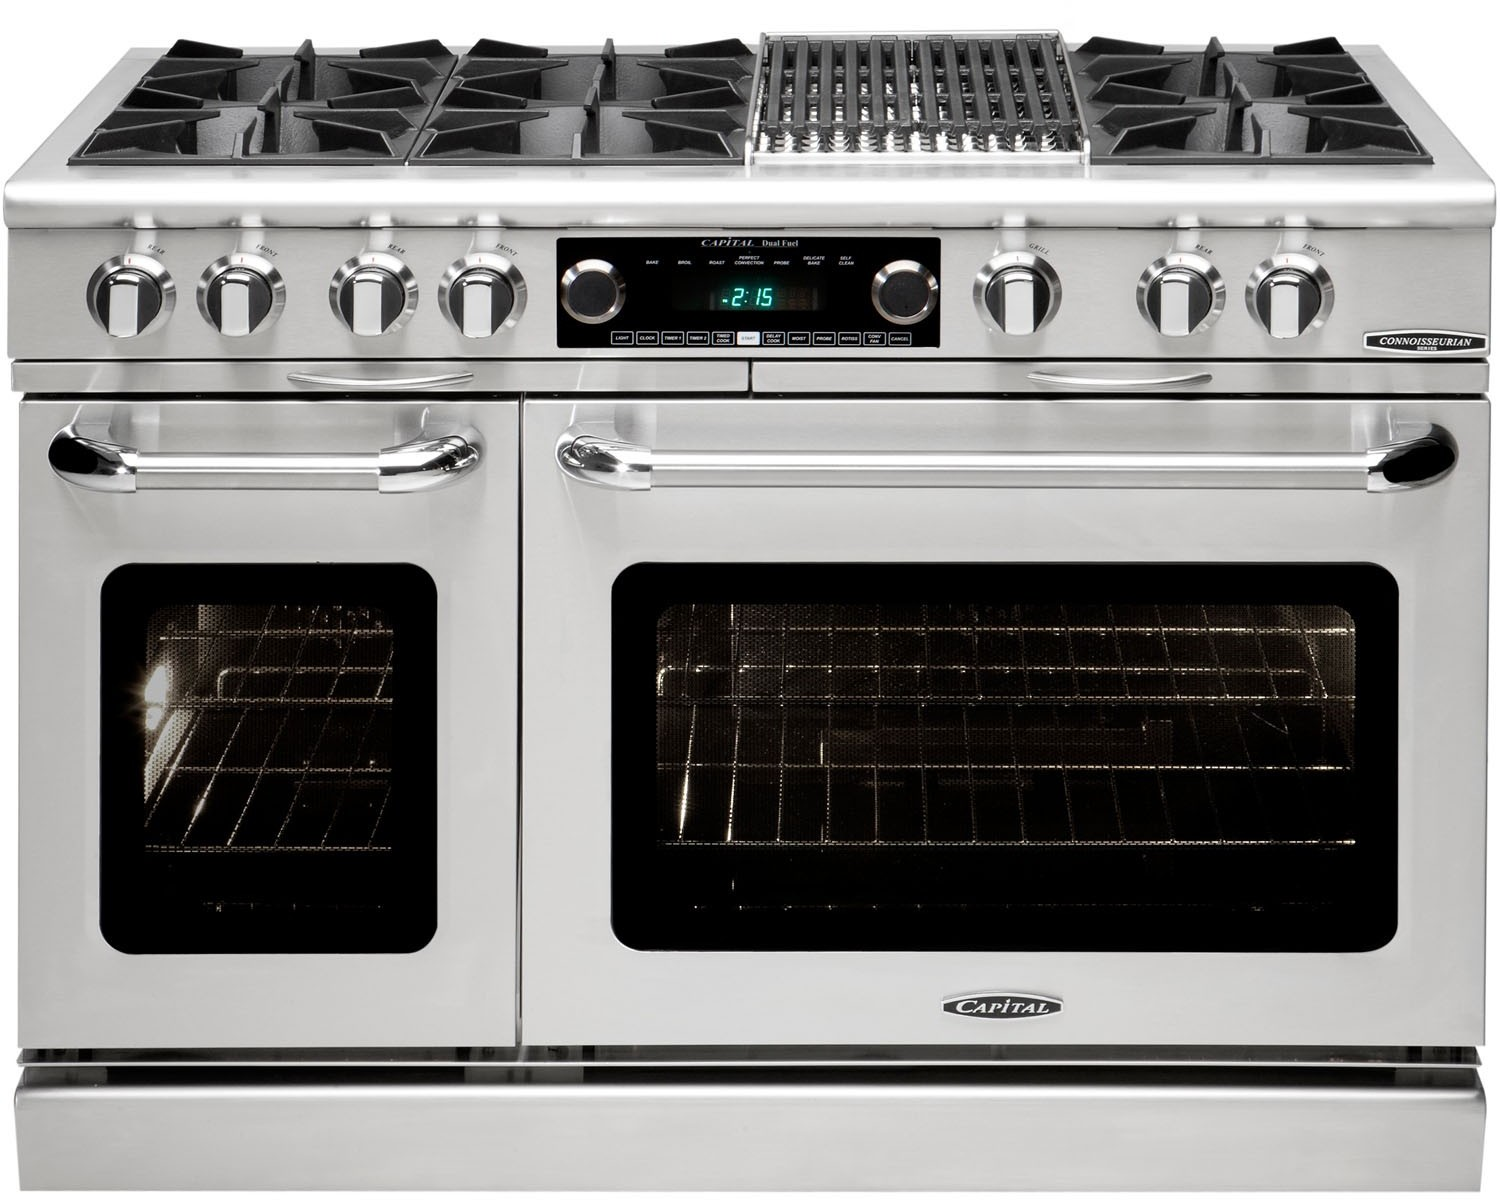 Side by side double oven cost - Side By Side Double Oven Cost 59